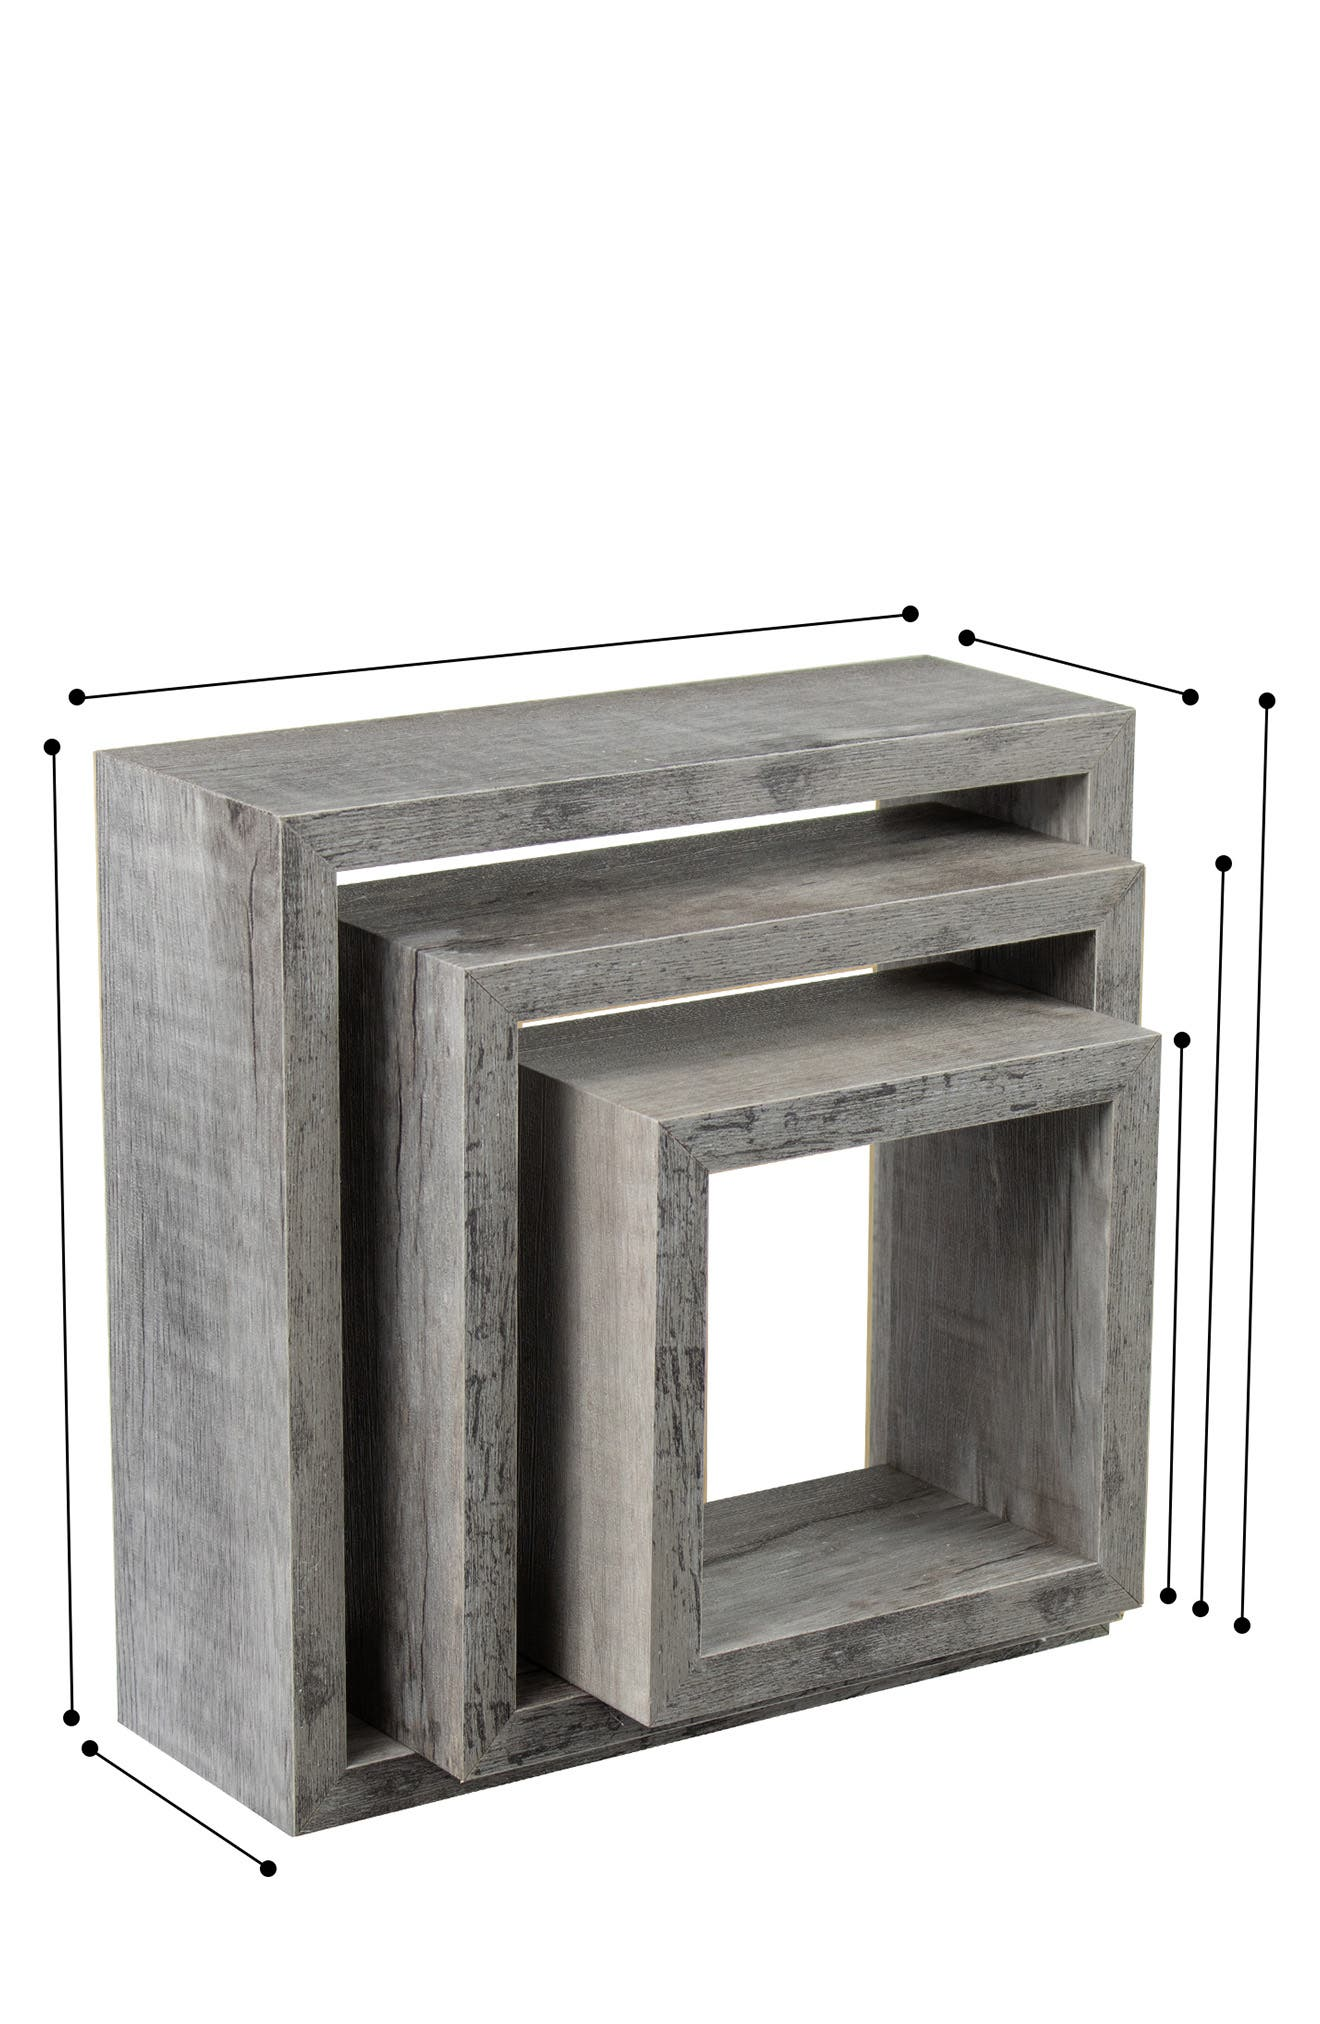 Image of Sorbus Floating Box Shelves 3-Piece - Gray Wood